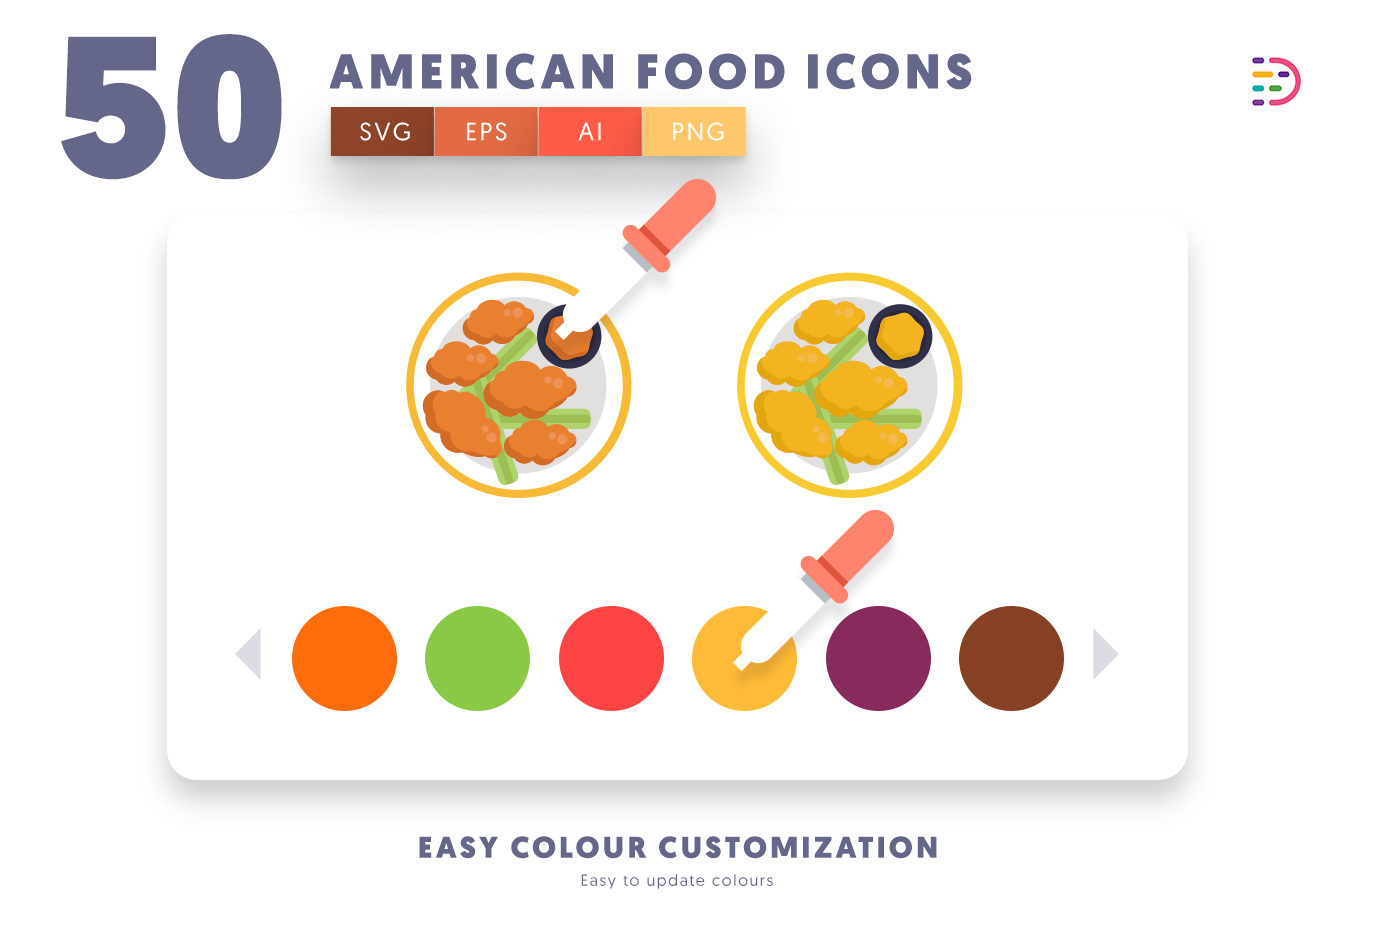 Customizable and vector 50 American Food Icons